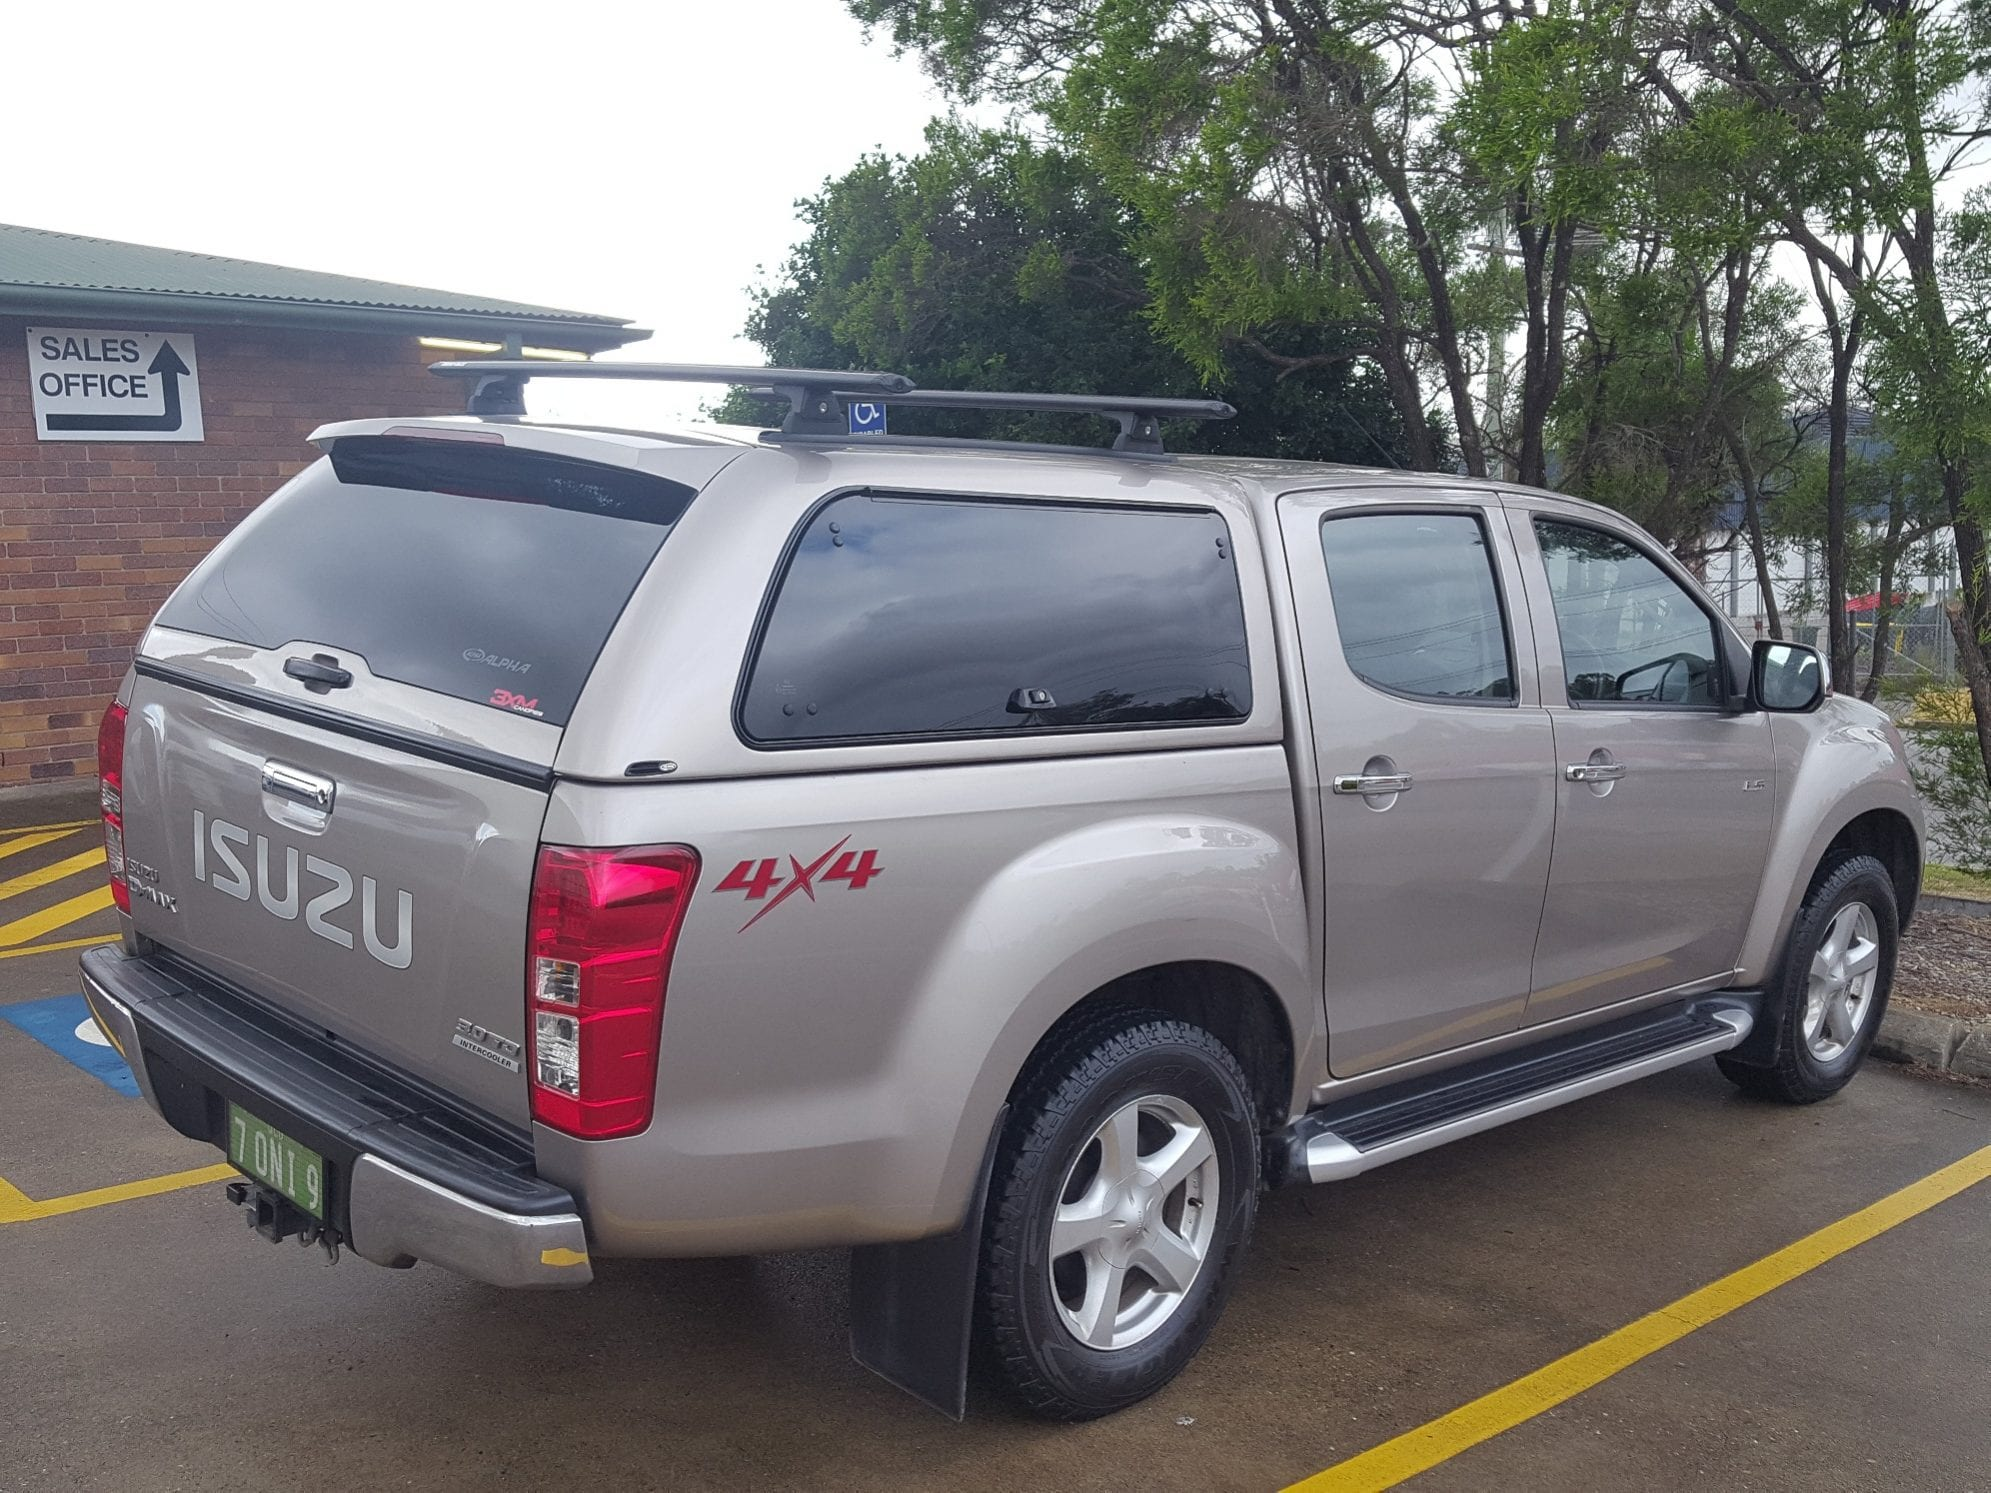 Isuzu Canopies in Brisbane